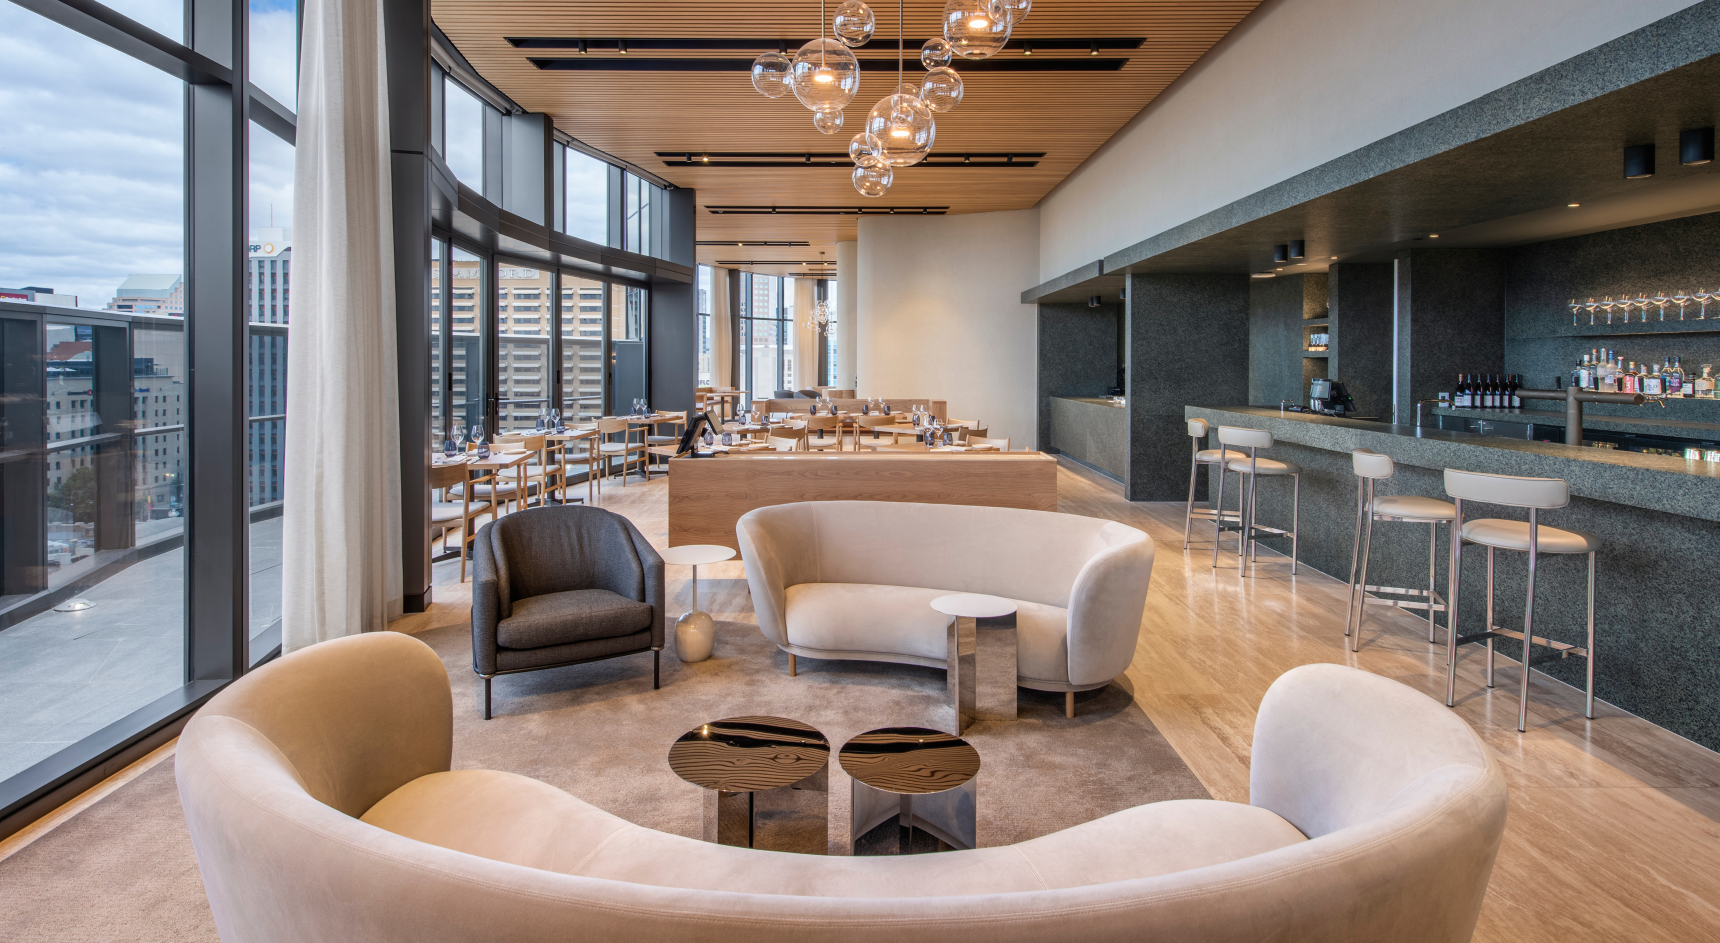 The luxurious Sol Bar and Restaurant. Image: SATC/SkyCity/David Sievers